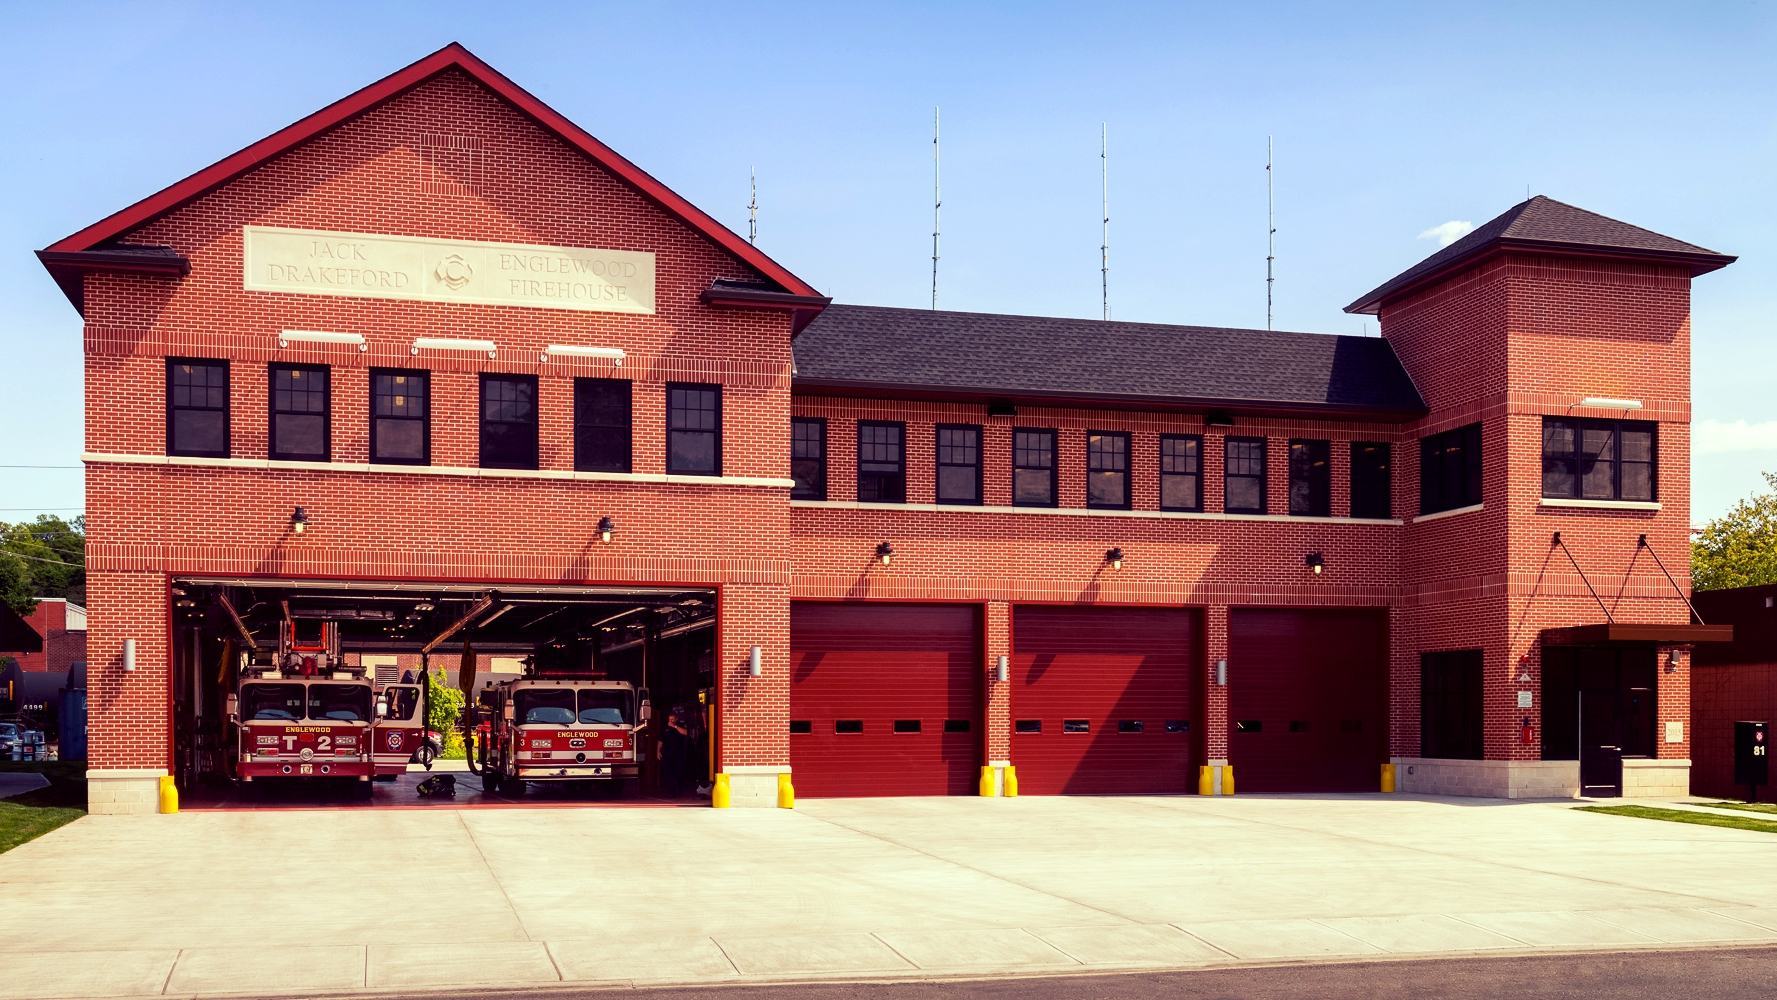 ABOUT US - Firehouse Adjusters was founded by a professional fireman whose joy has been to salvage emergencies. Therefore, it's not a surprise that this organization is passionate about helping people get the best settlement for their property loss.